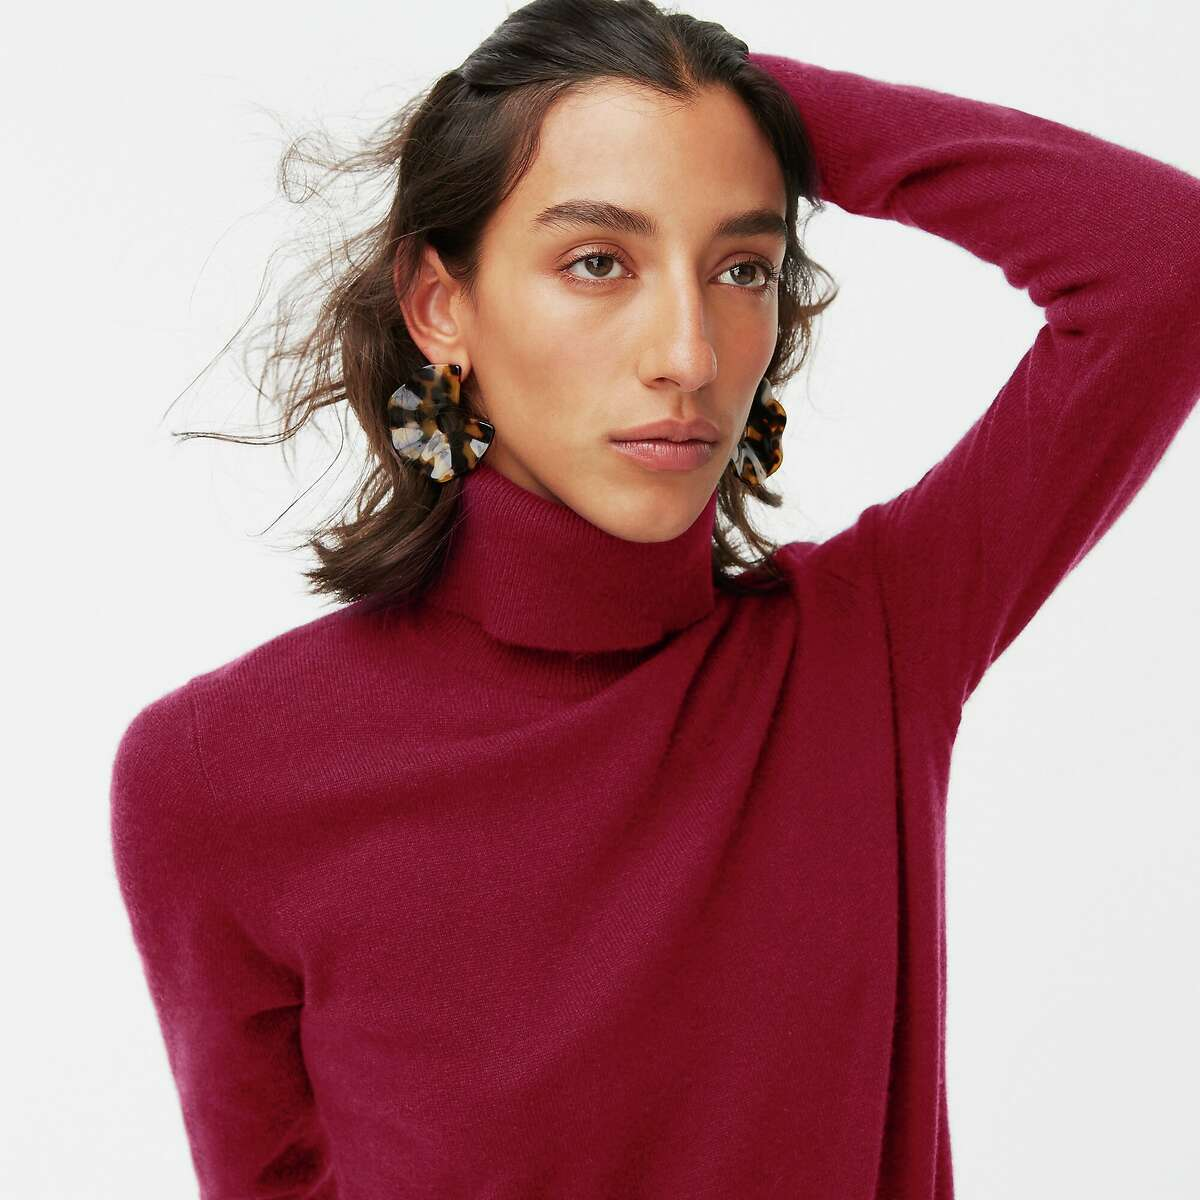 J.Crew has cashmere sweaters, scarves and gloves up to 50 percent off right now.